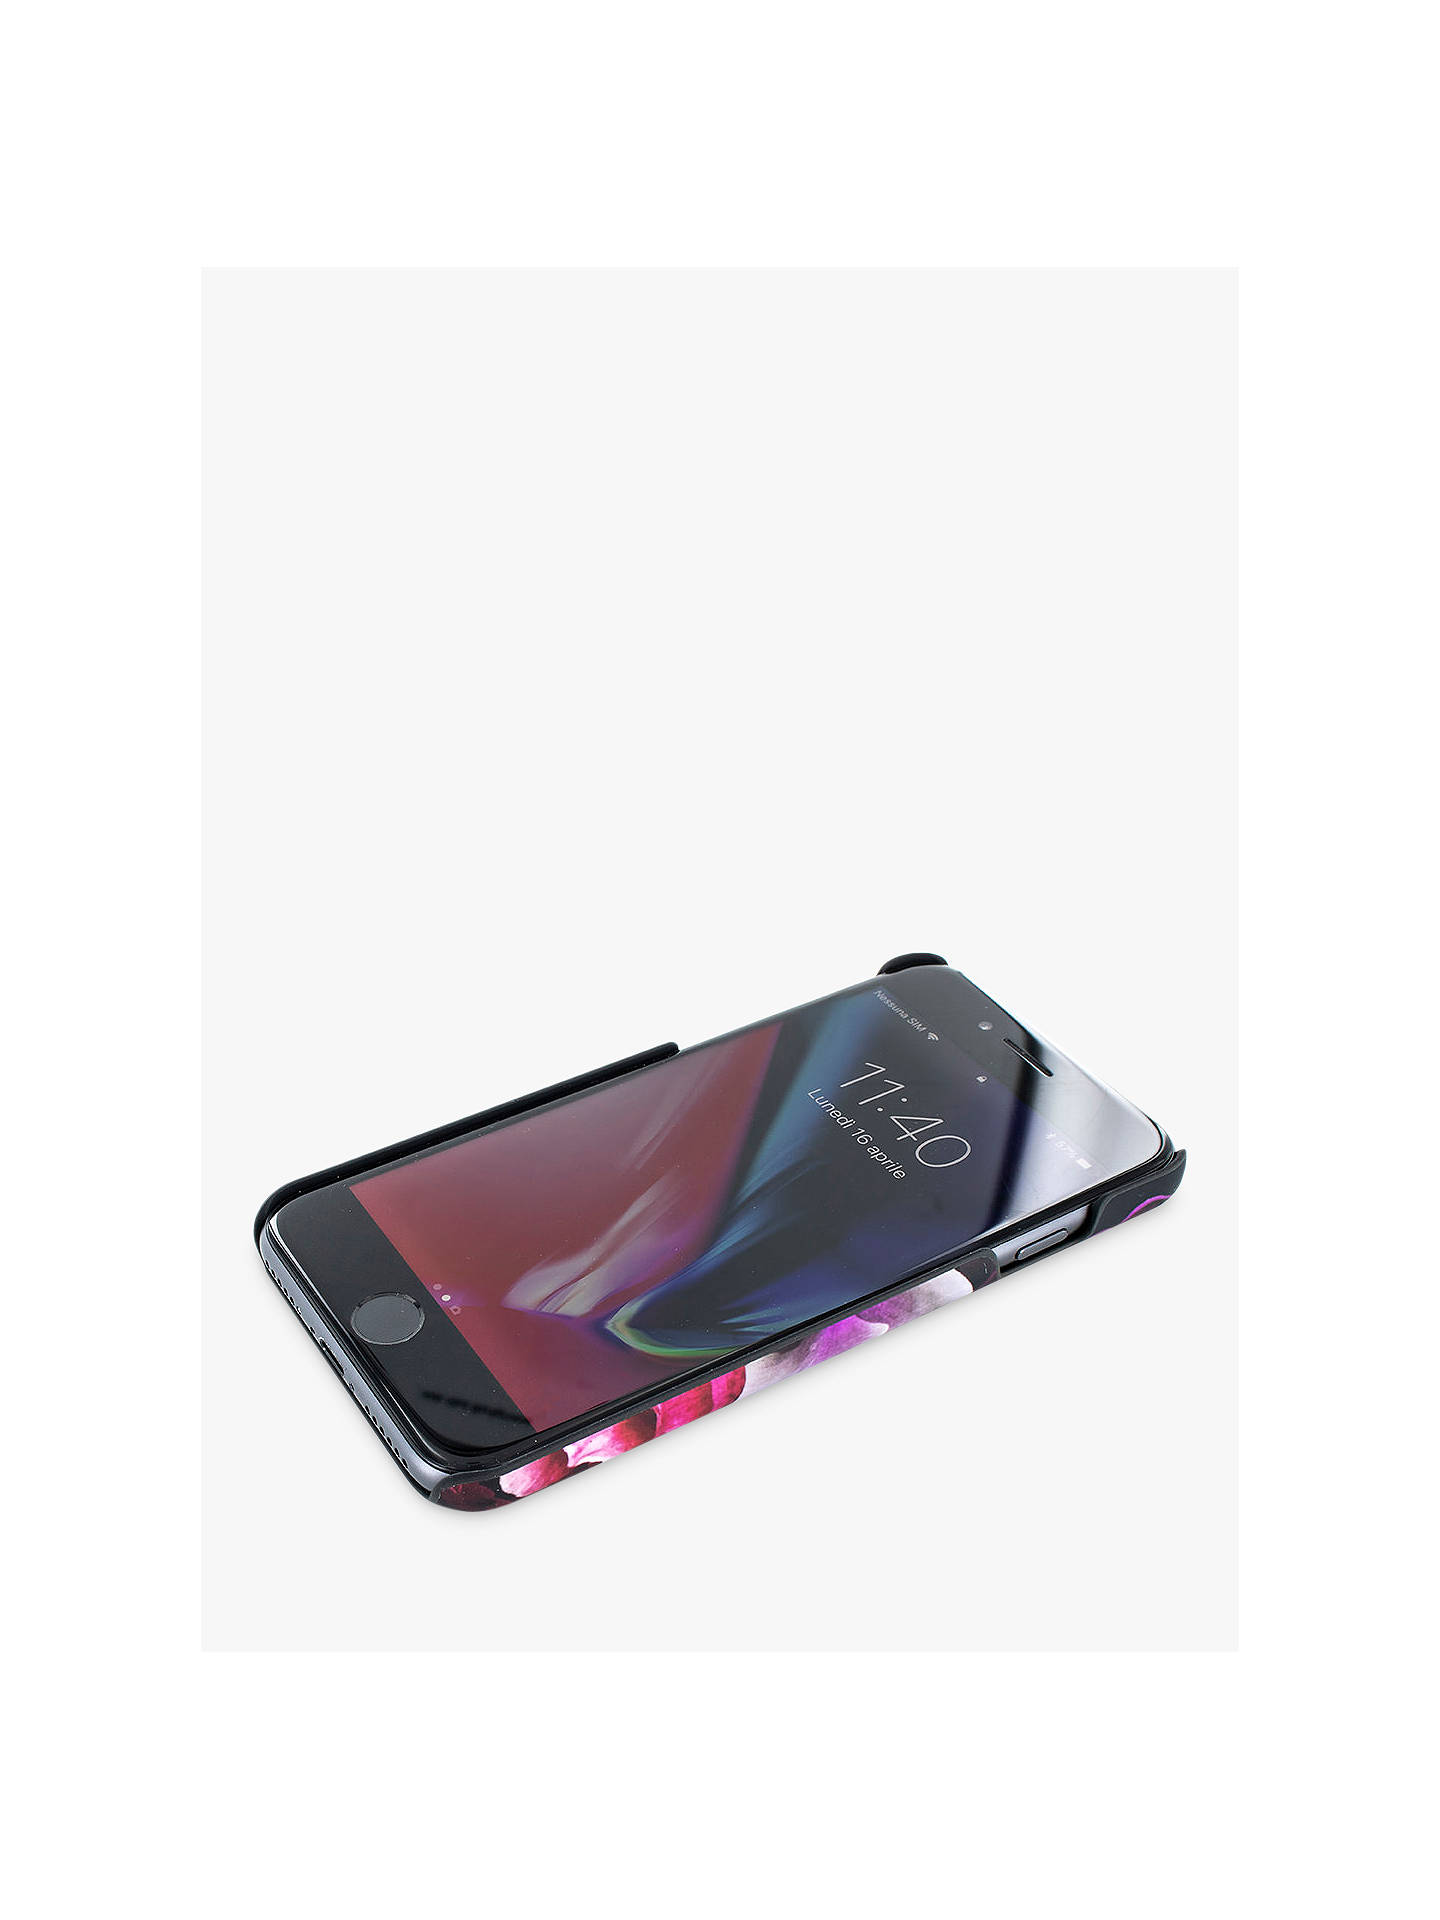 Buy Ted Baker Izzey Hard Shell Case for iPhone 6/7 and 8 Online at johnlewis.com